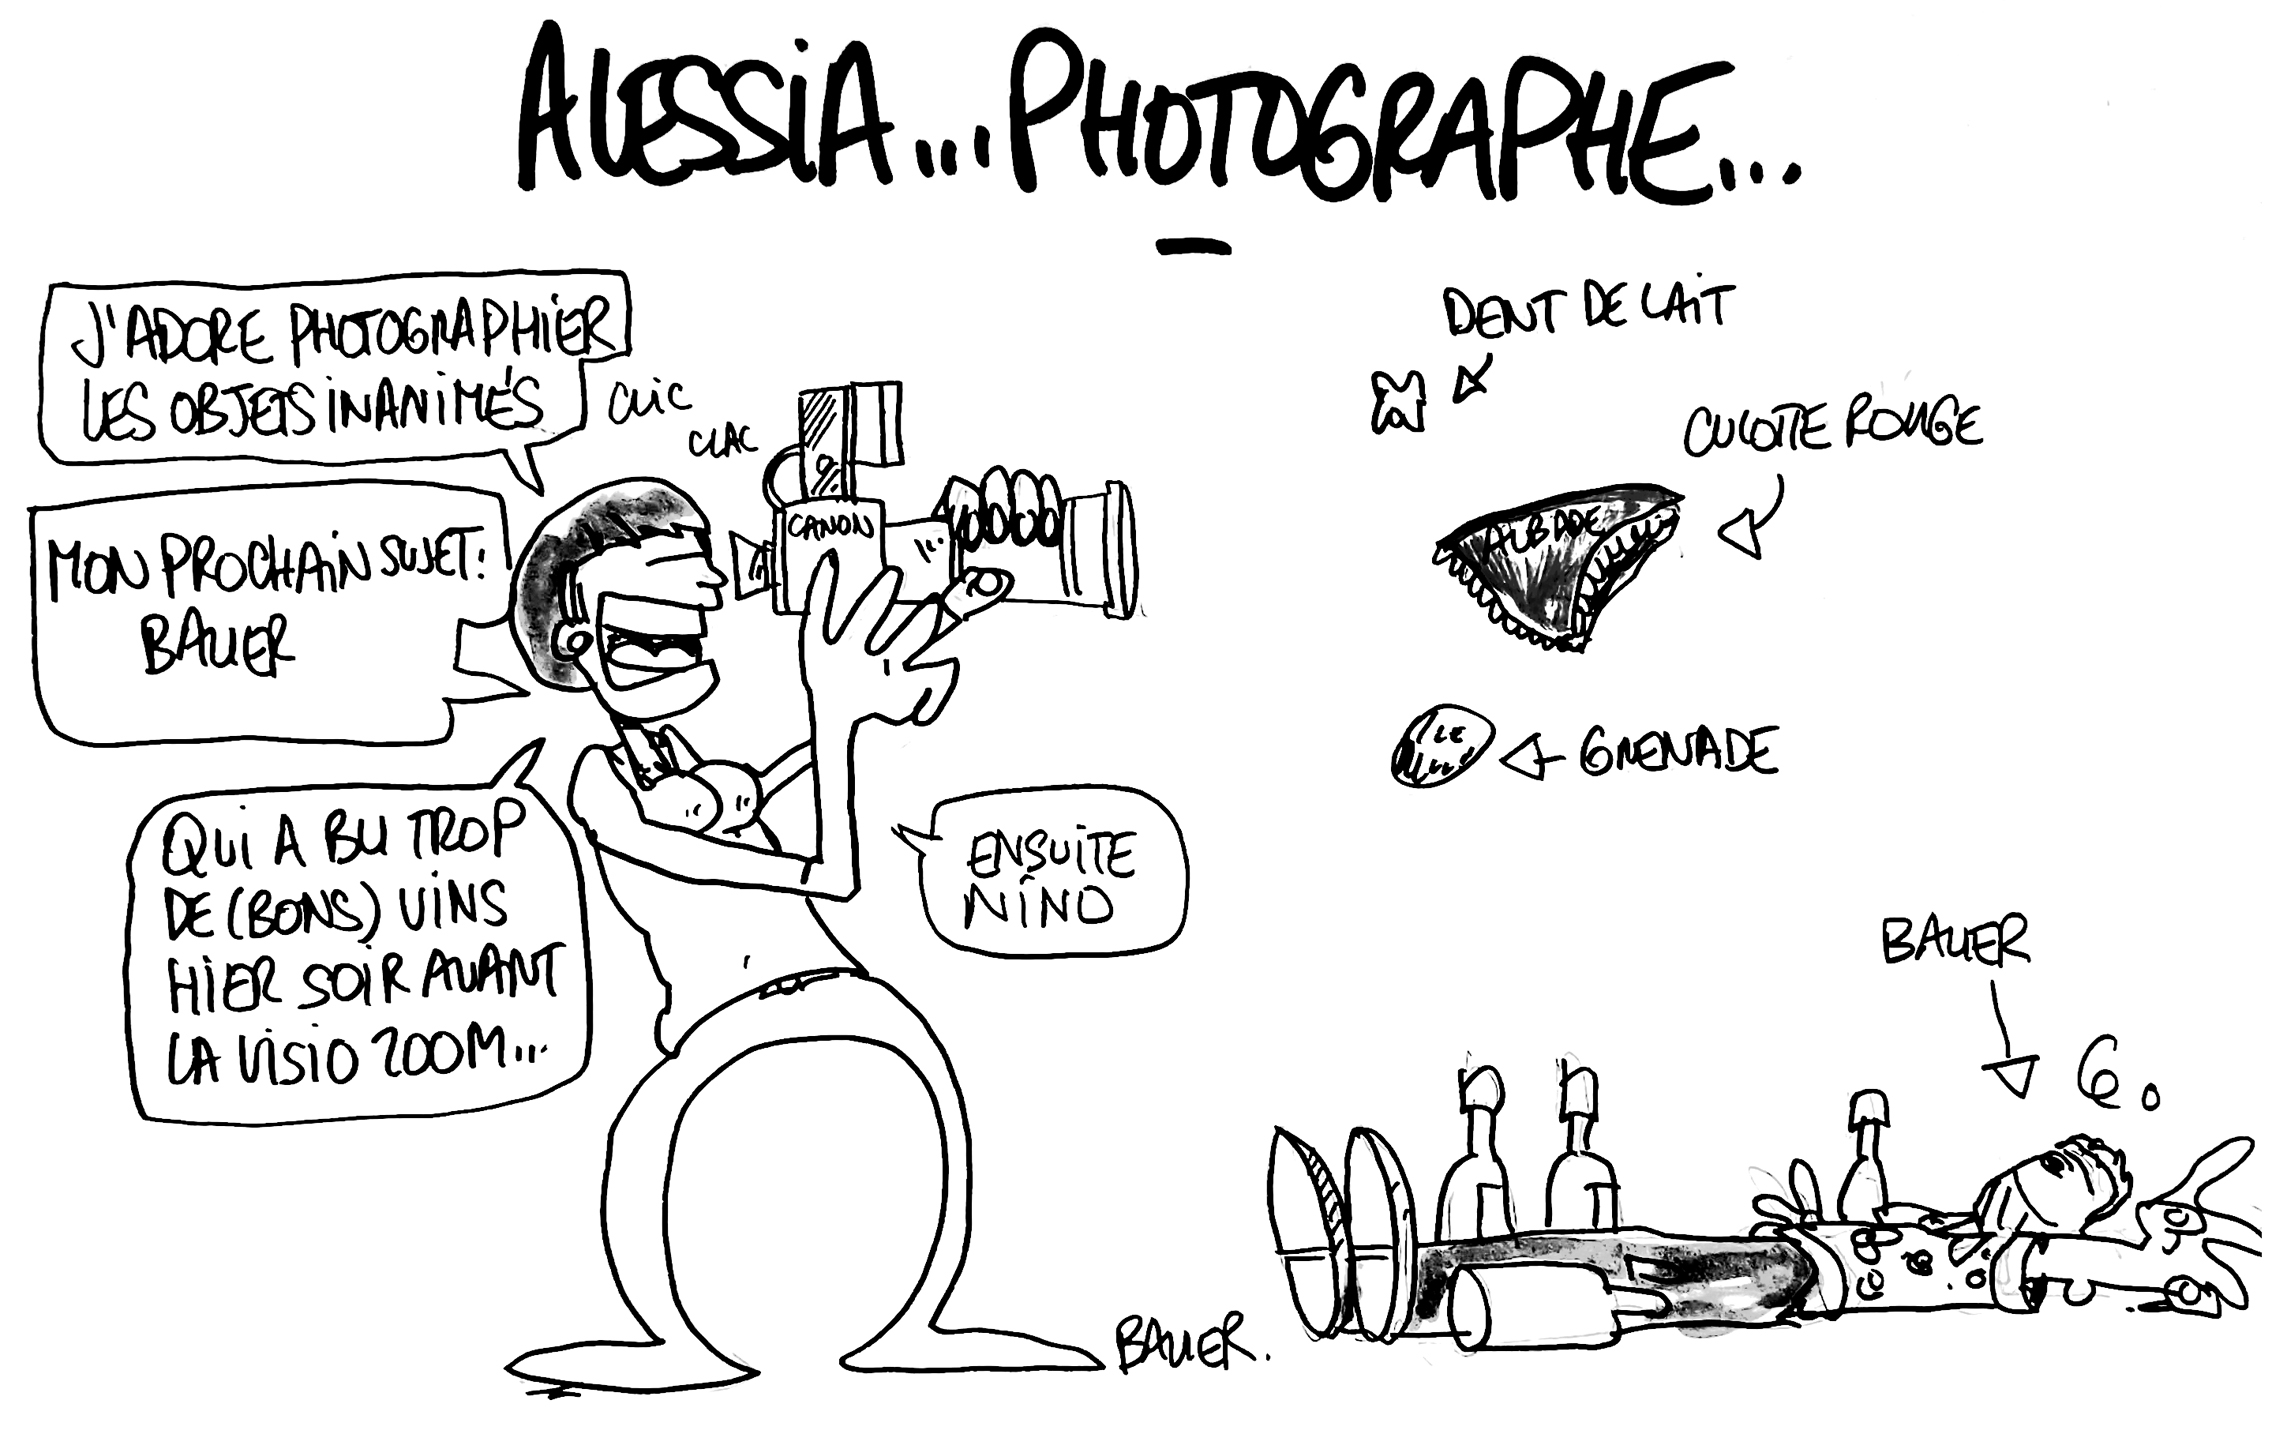 Alessia photographe ©Bauer ©Absolument